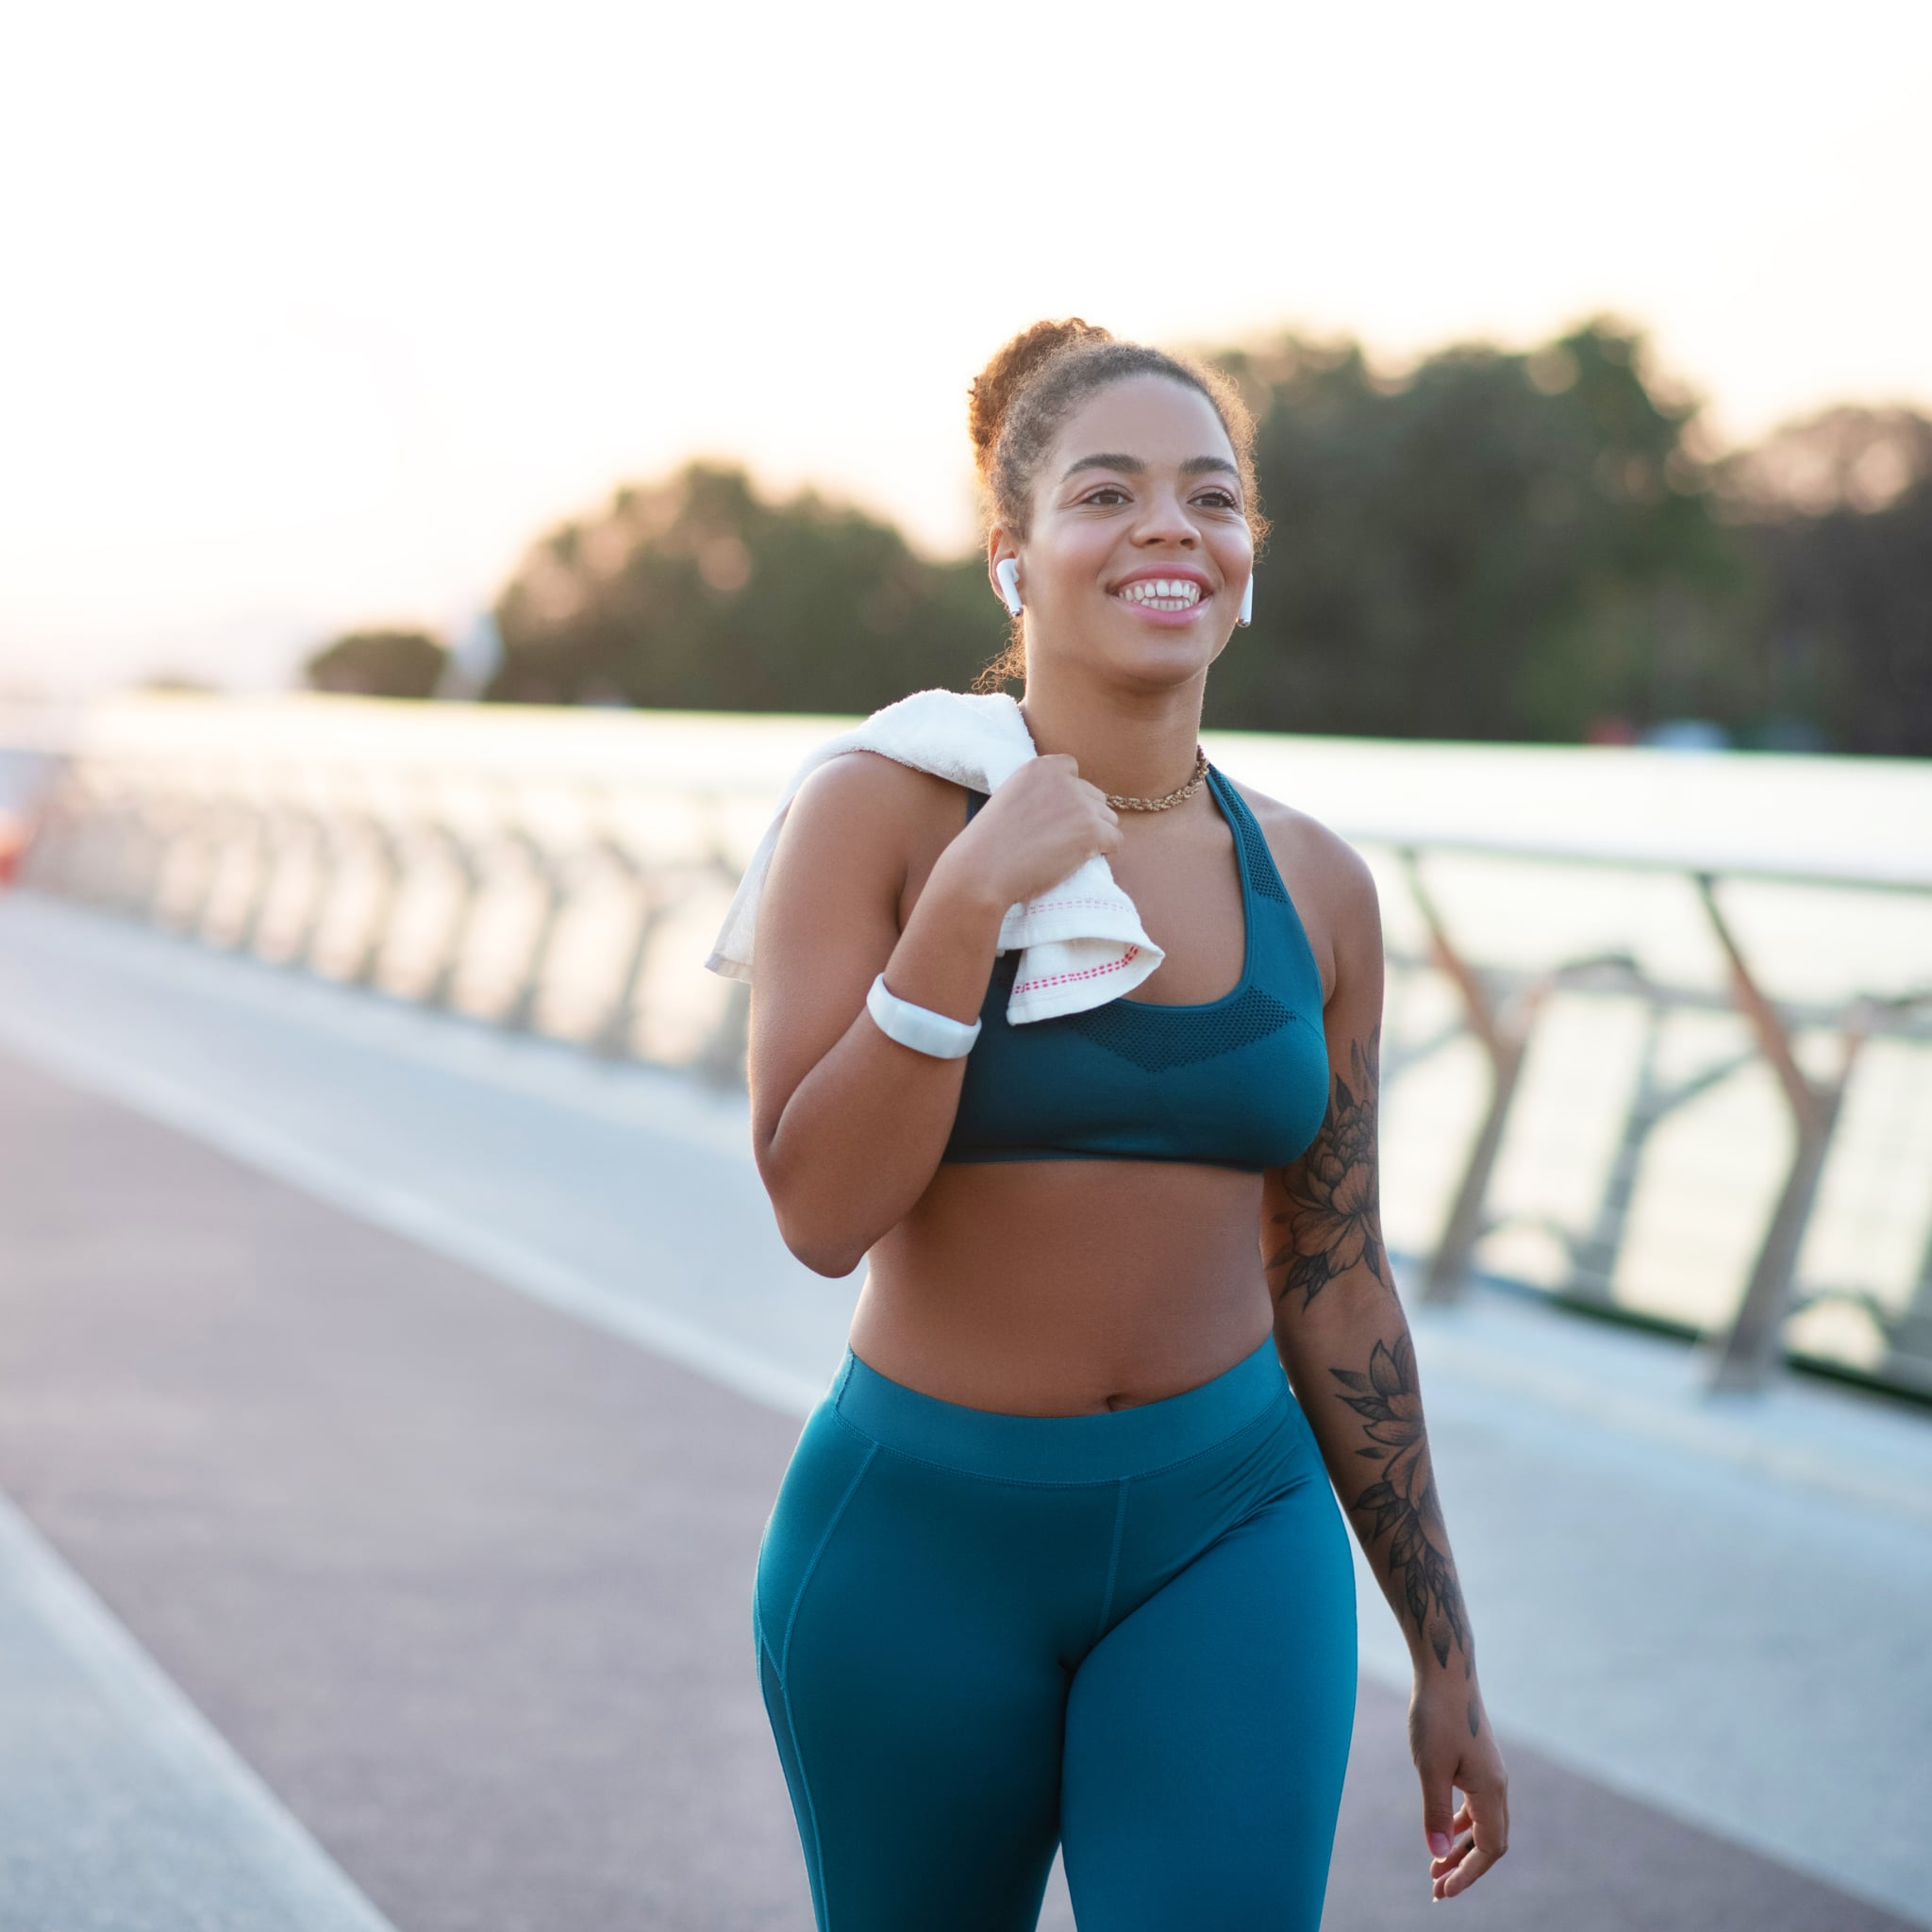 Workout Apparel Brands Created by Women of Color